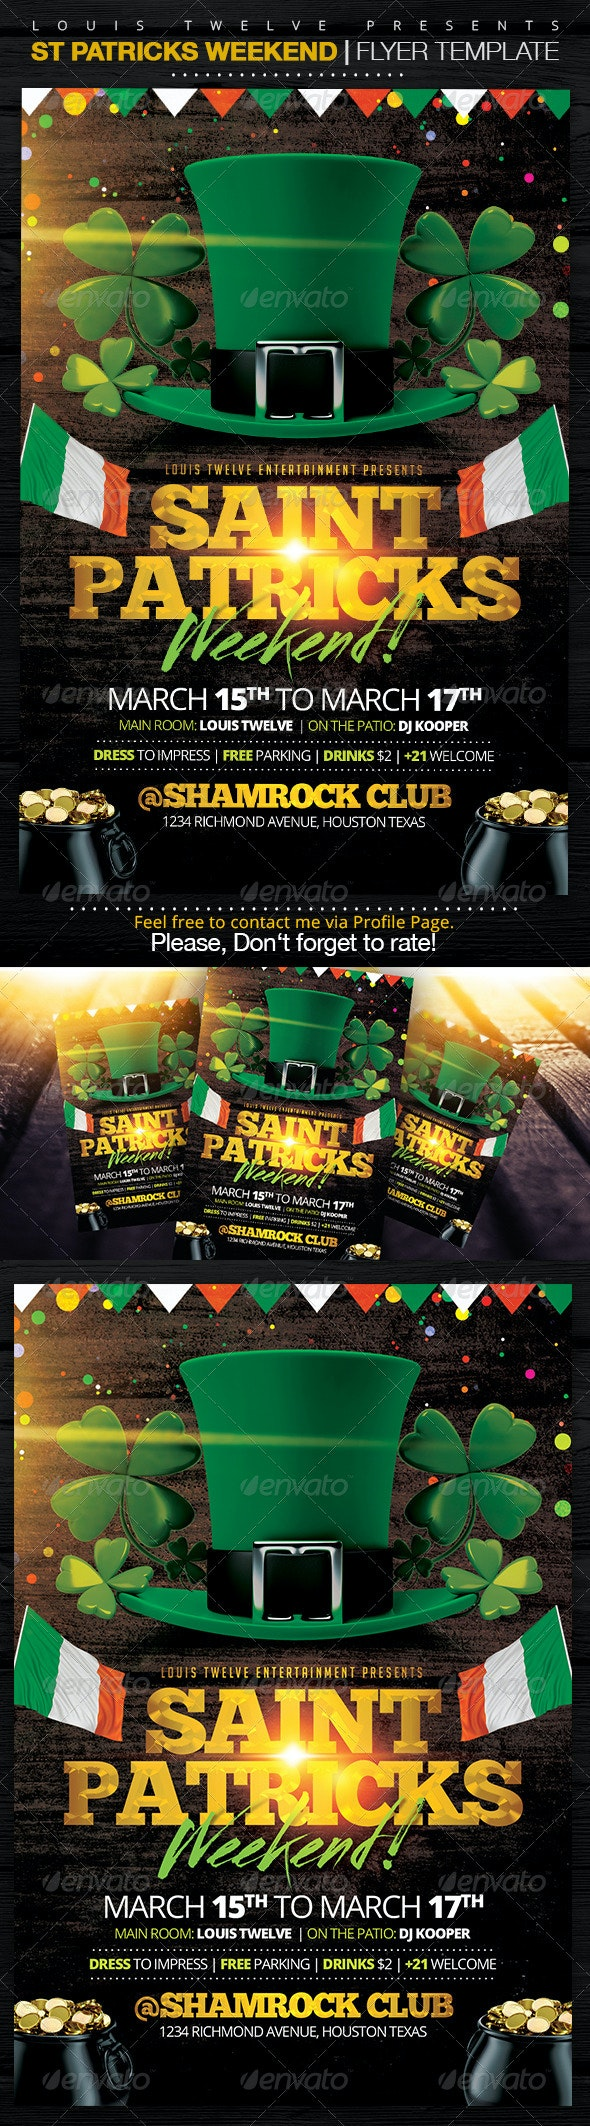 St Patricks Weekend | Flyer Template - Clubs & Parties Events